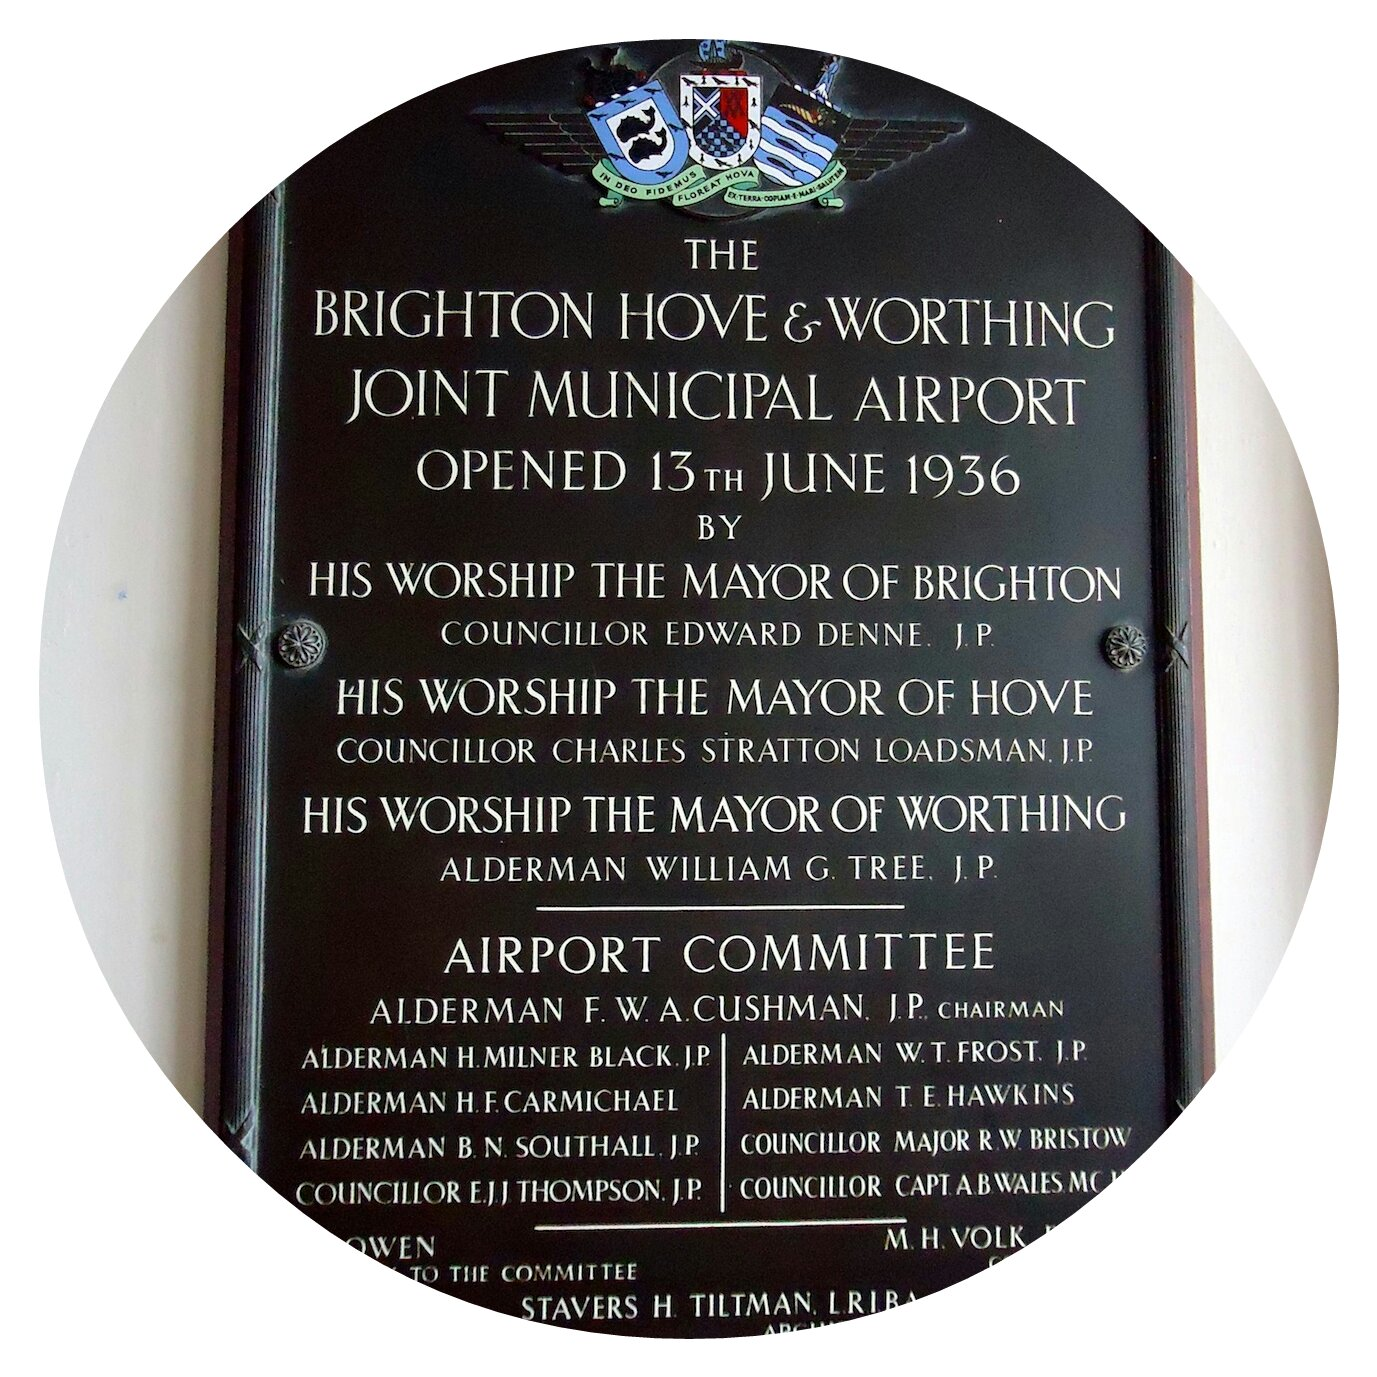 Brighton Hove & Worthing Joint Municipal Airport sign, 1936